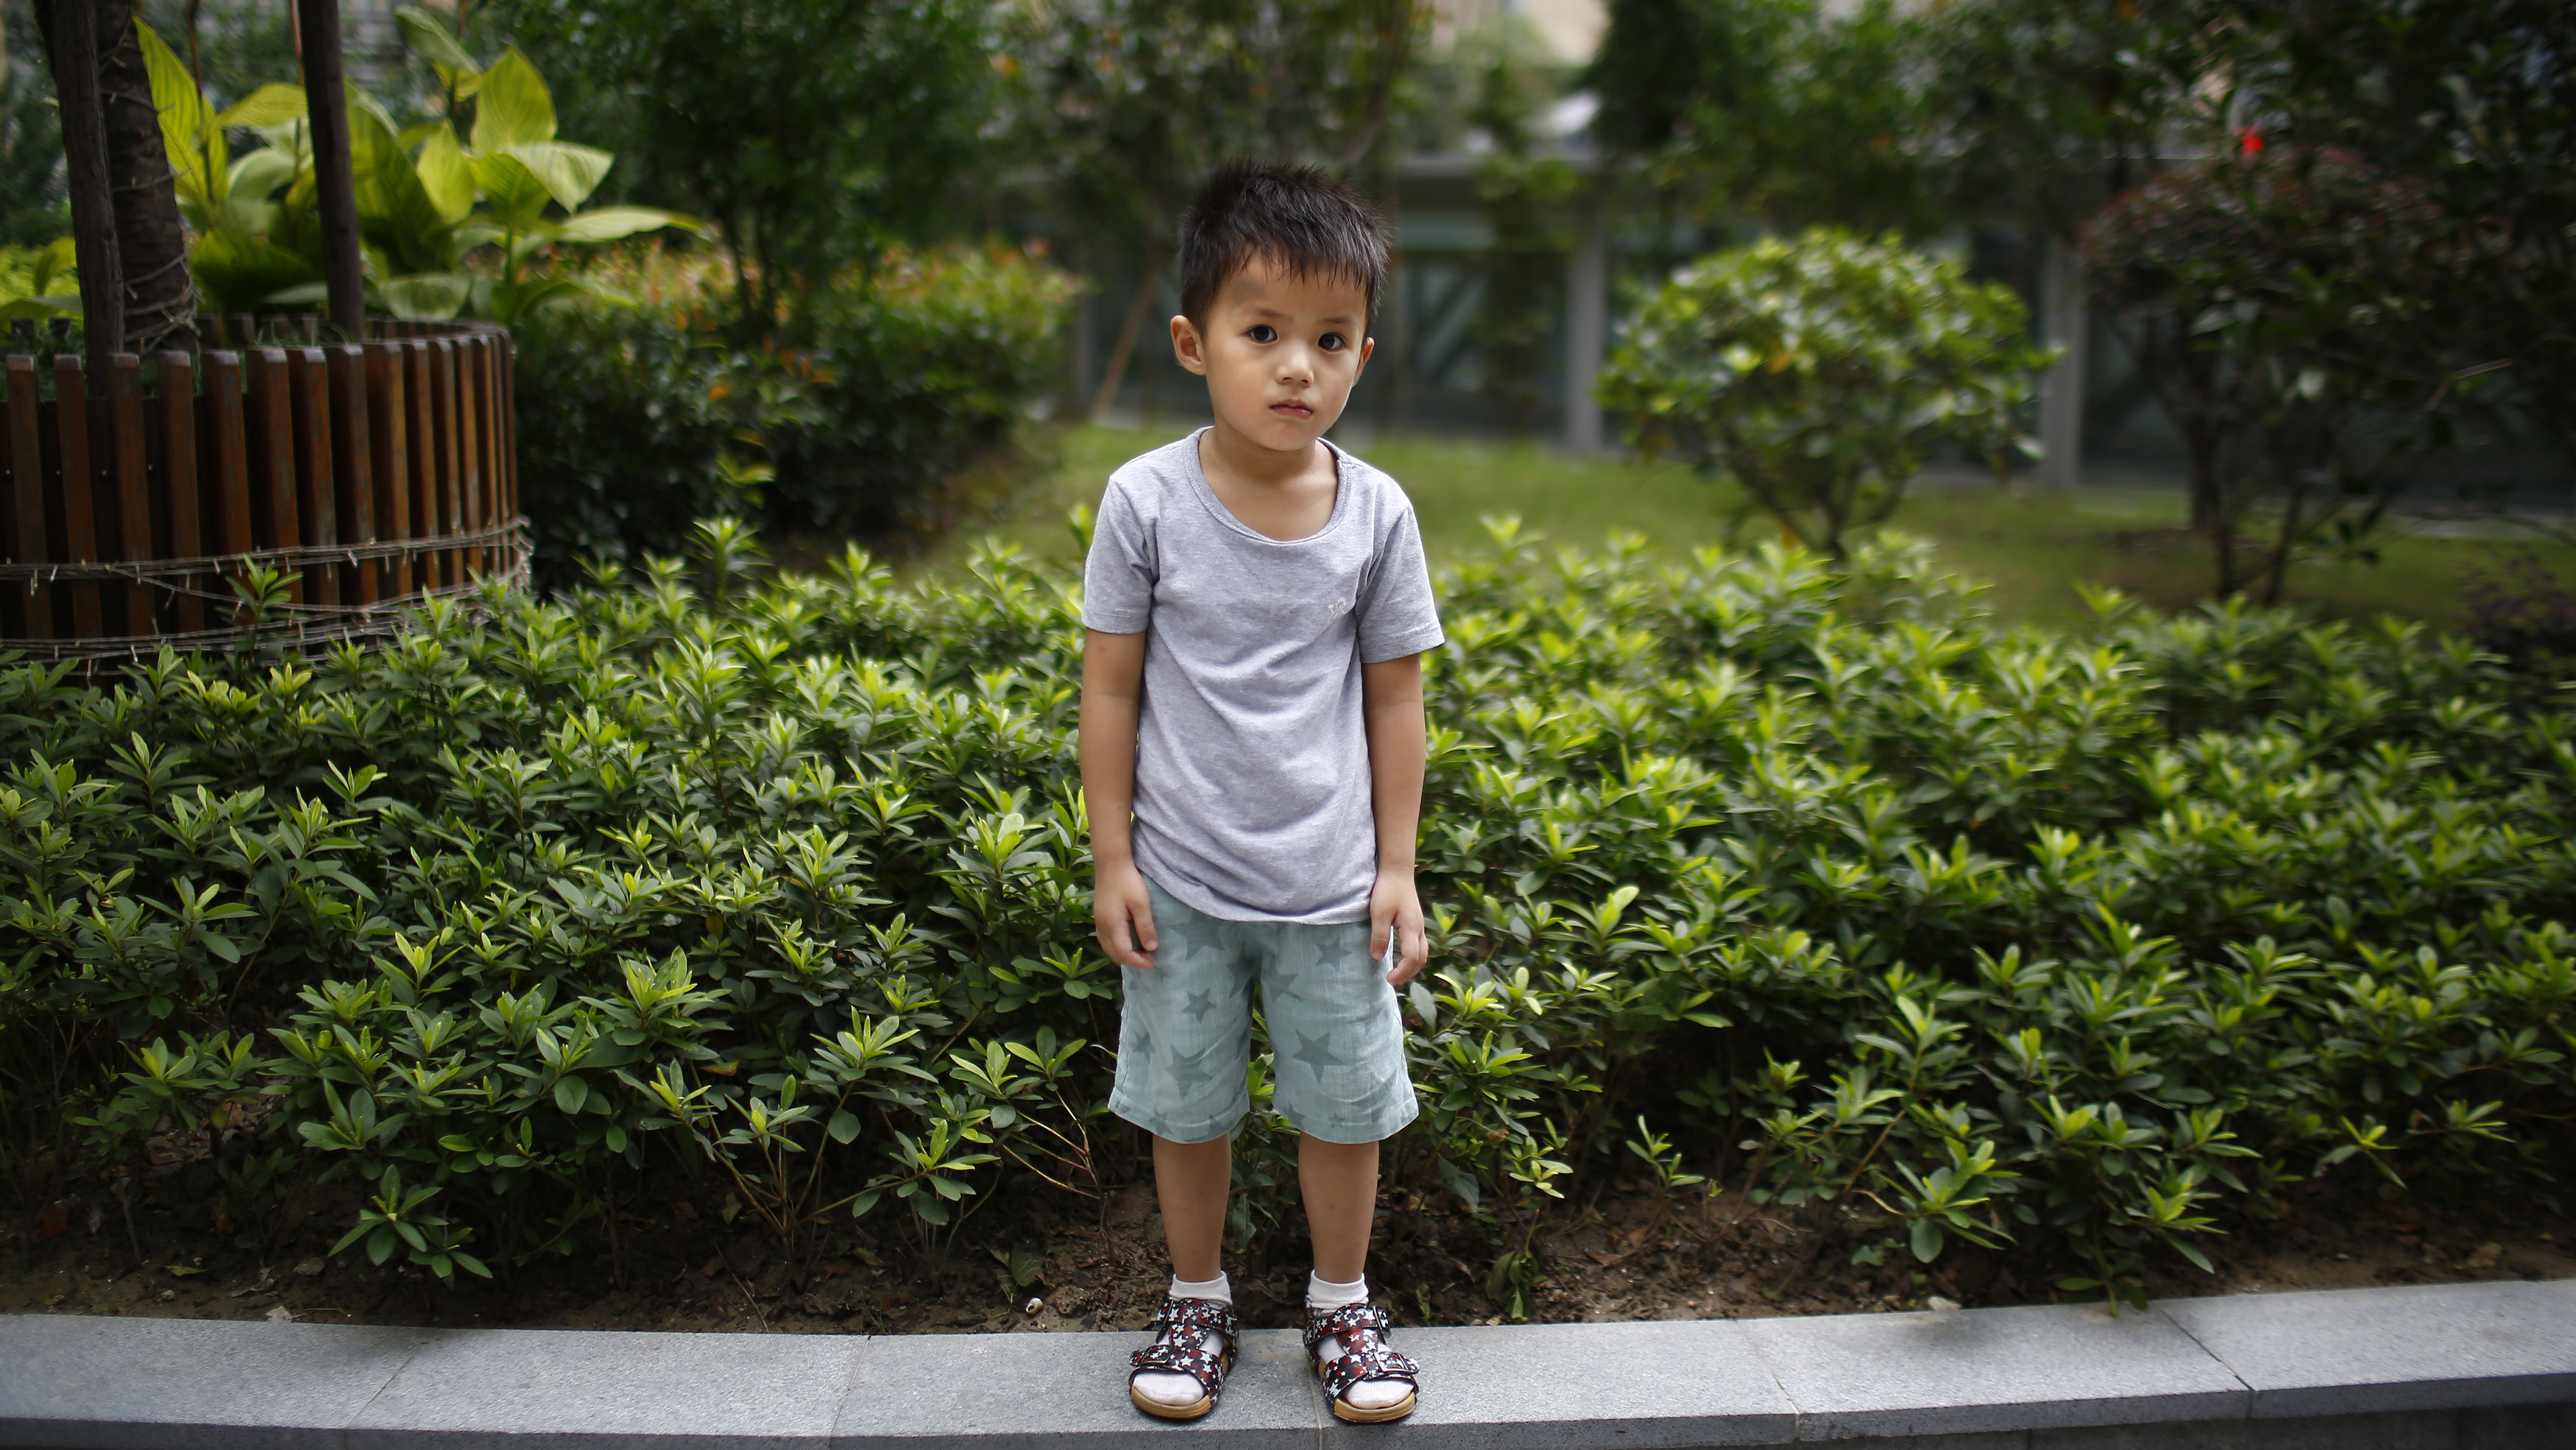 """Qin Wuyue, who was born in 2010, poses for a photograph in Shanghai August 22, 2014. When asked if he would like to have siblings, Wuyue said: """"No they're noisy."""" Reuters Photographer Carlos Barria photographed a person born in each year China?s one child policy has been in existence; from a man born in 1979, to a baby born in 2014, and asked them if they would have like to have siblings. China, the world's most populous country with nearly 1.4 billion people, says the country's one-child policy has averted 400 million births since 1980, saving scarce food resources and helping to pull families out of poverty. Couples violating the policy have had to pay a fine, or in some cases have been forced to undergo abortions. But late last year, China said it would allow millions of families to have two children, part of a plan to raise fertility rates and ease the financial burden on a rapidly ageing population. Picture taken August 22, 2014."""